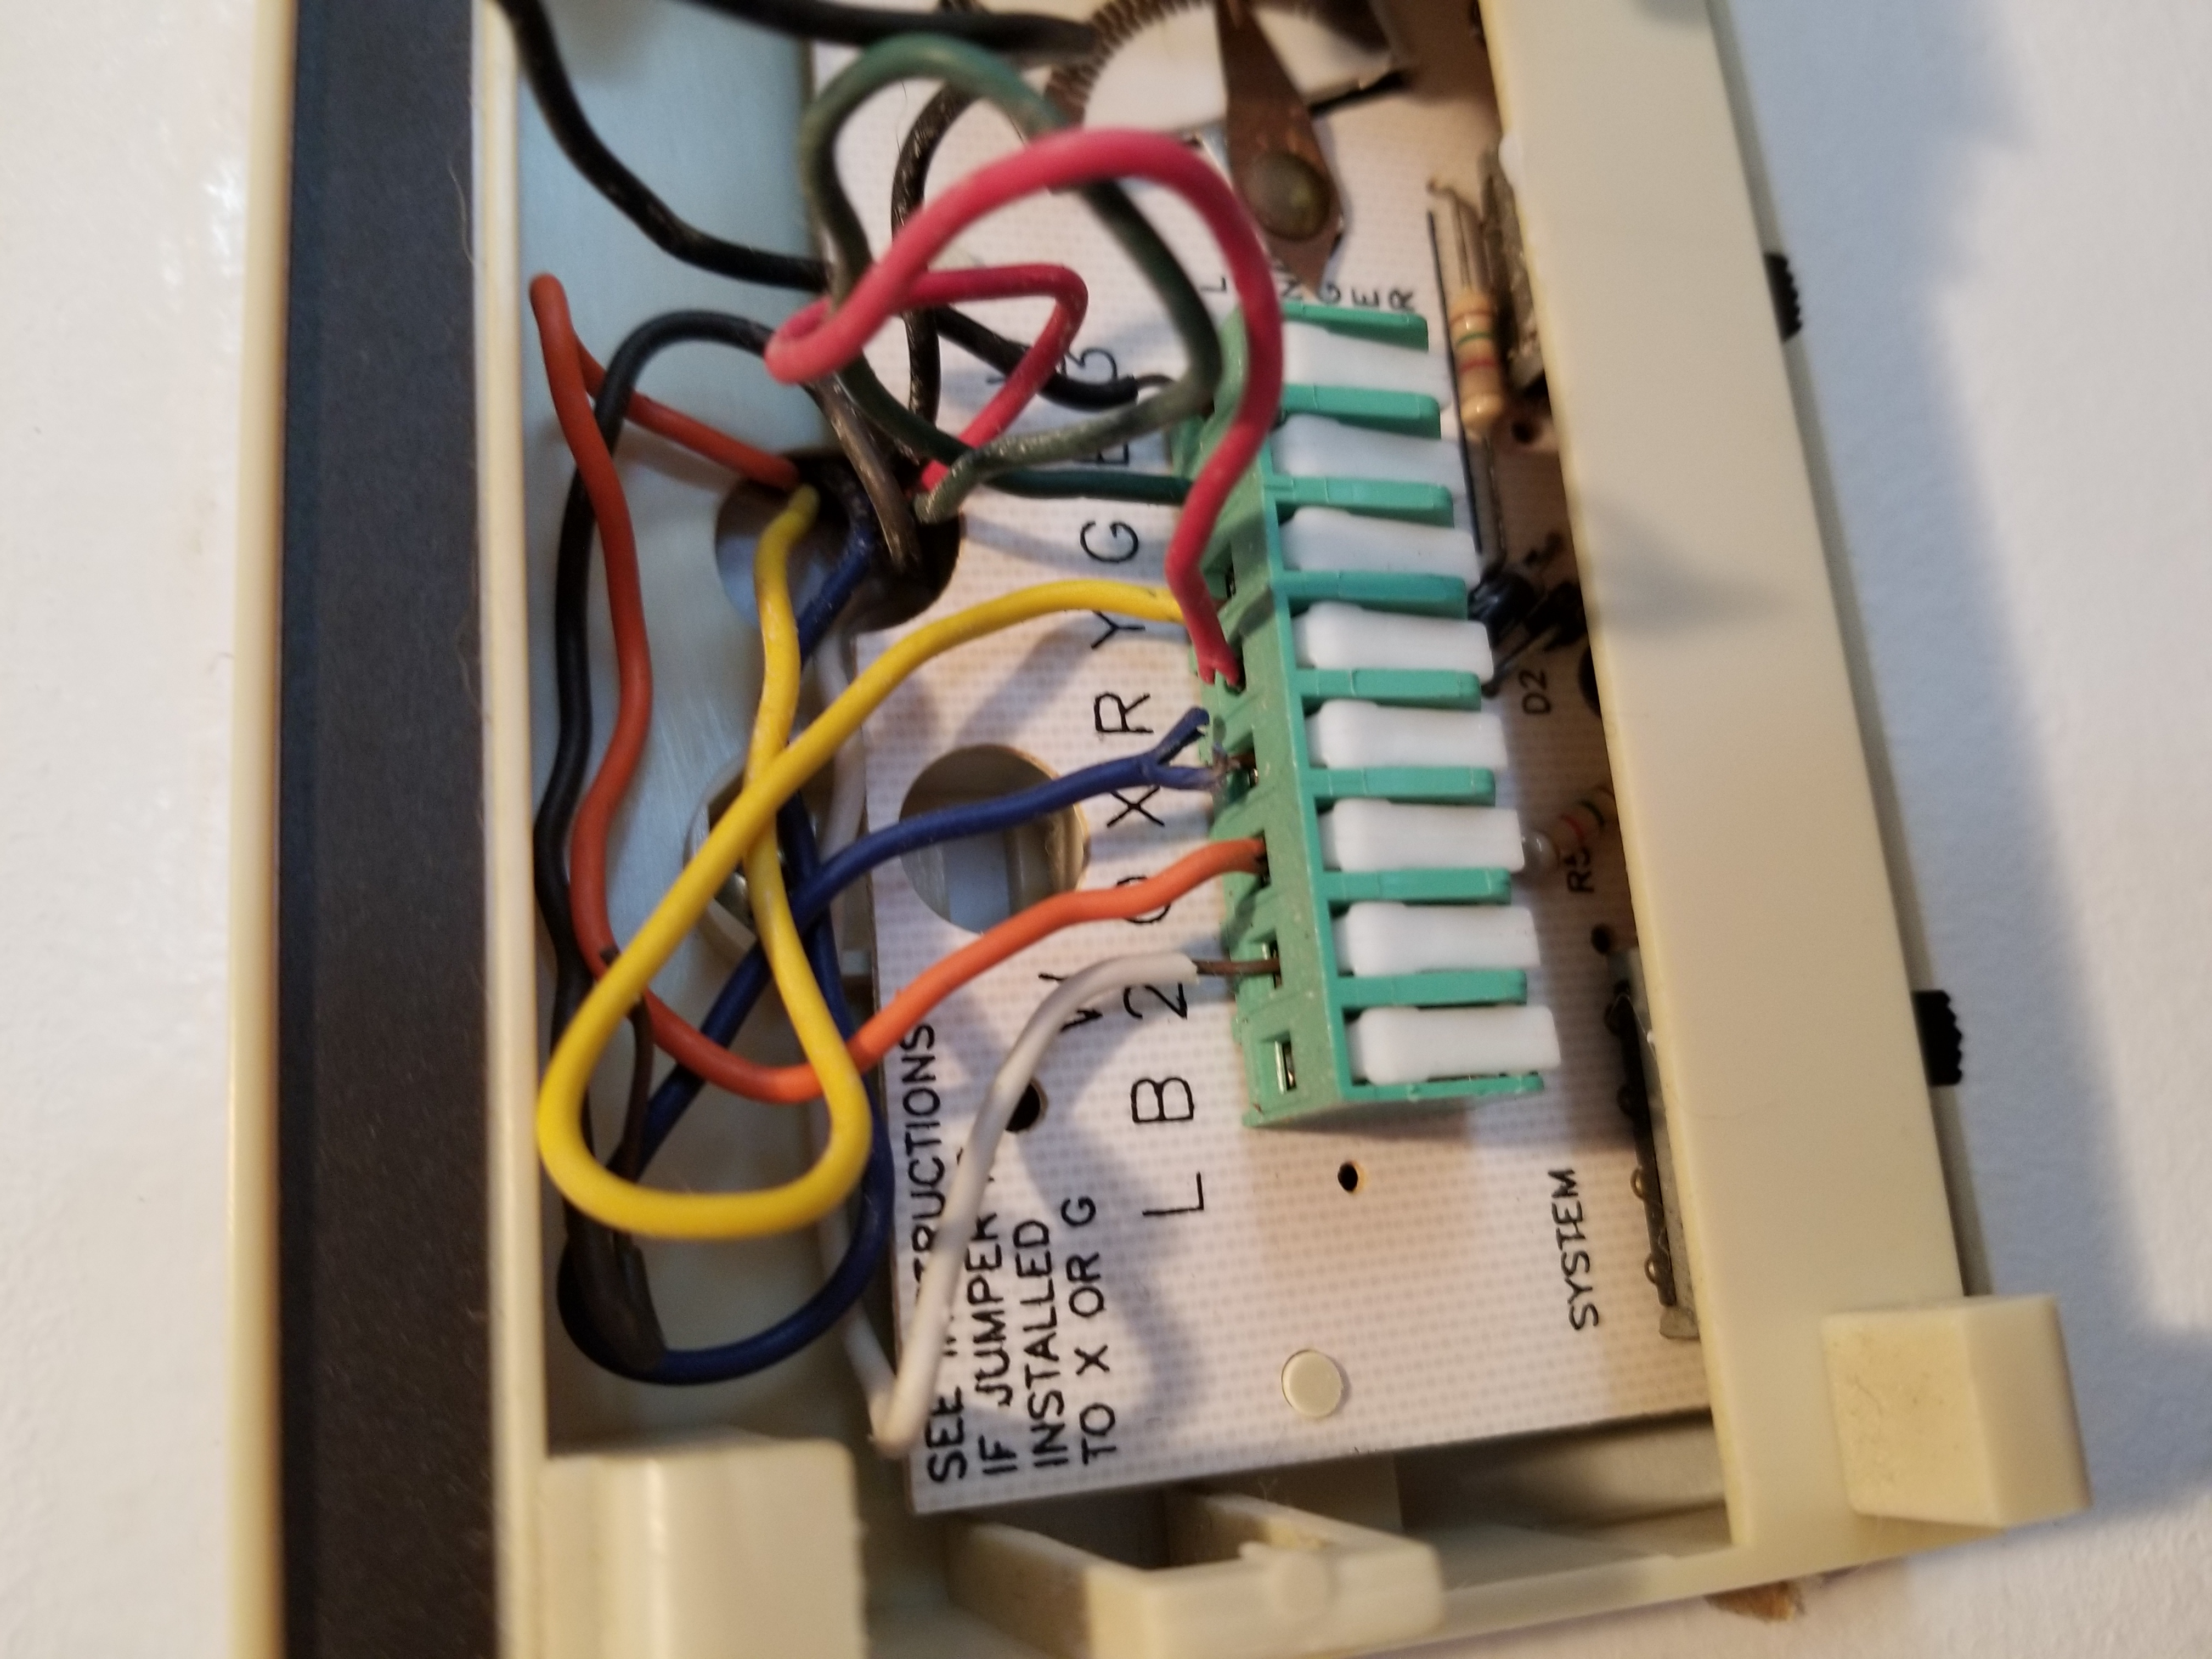 I would like to hook up.a nest 3rd generation thermostat to a heat pump  system with manual.emergancy heat. My issue isJustAnswer